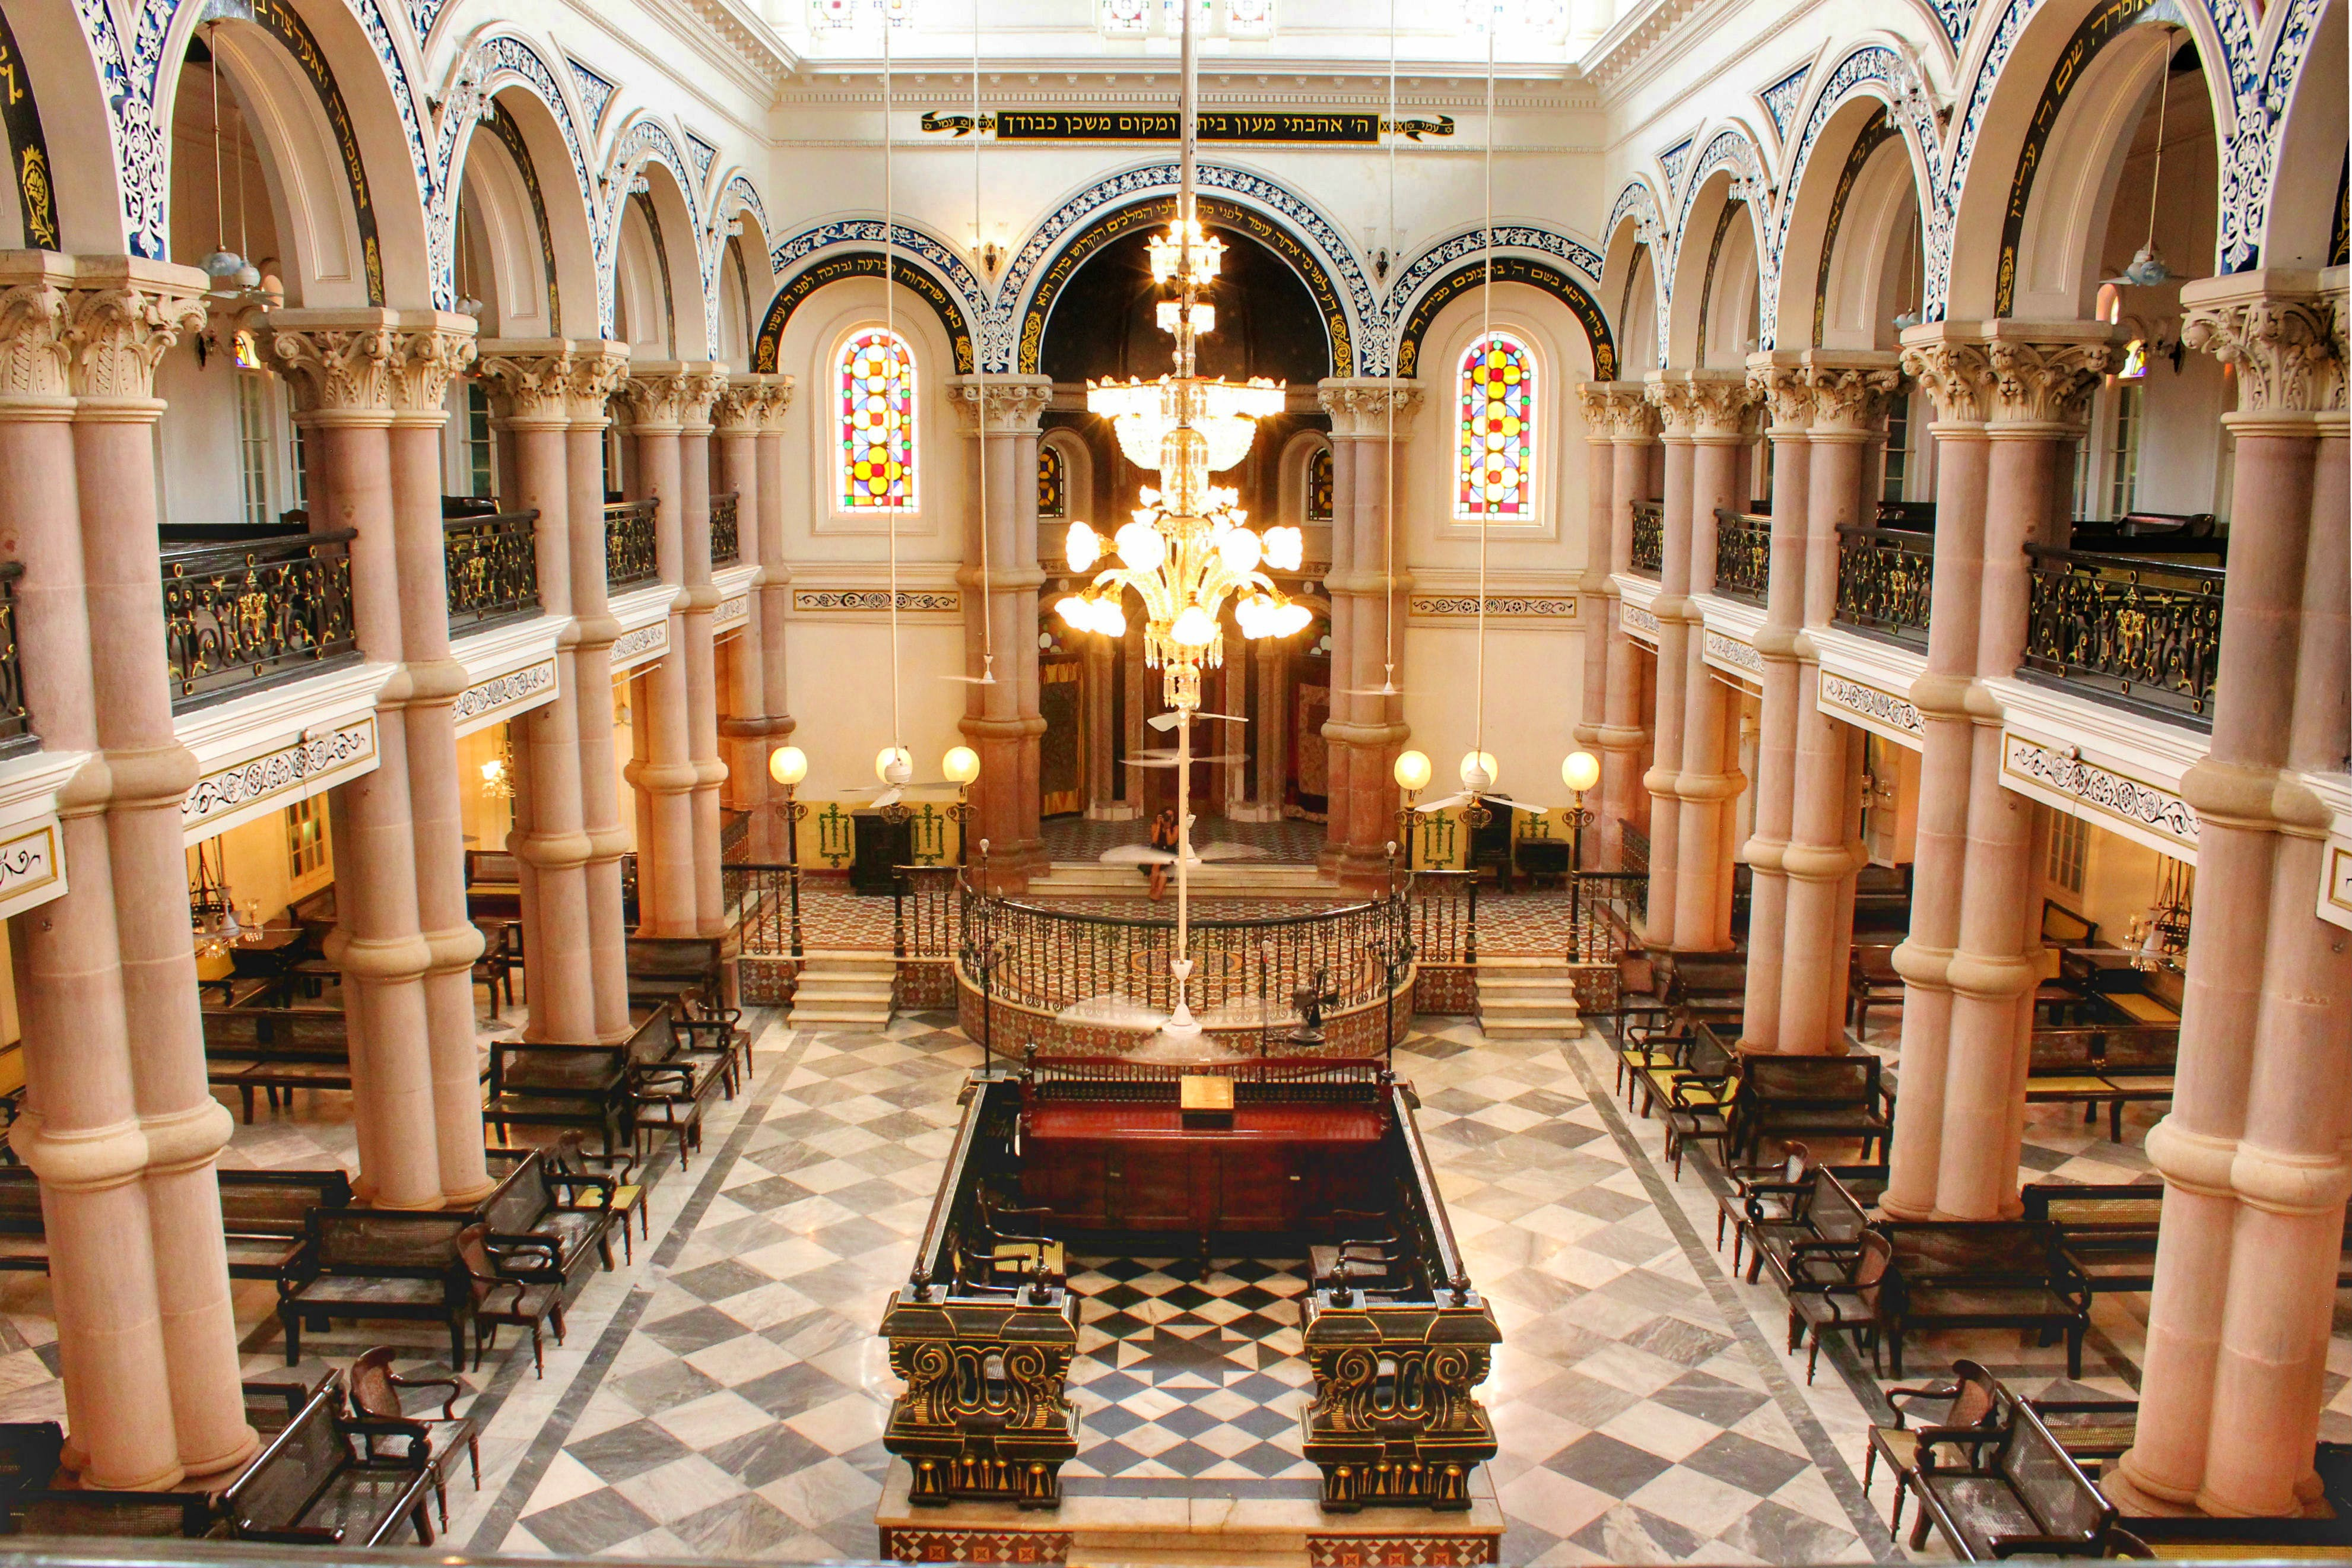 Building,Holy places,Interior design,Aisle,Architecture,Chapel,Place of worship,Synagogue,Church,Basilica